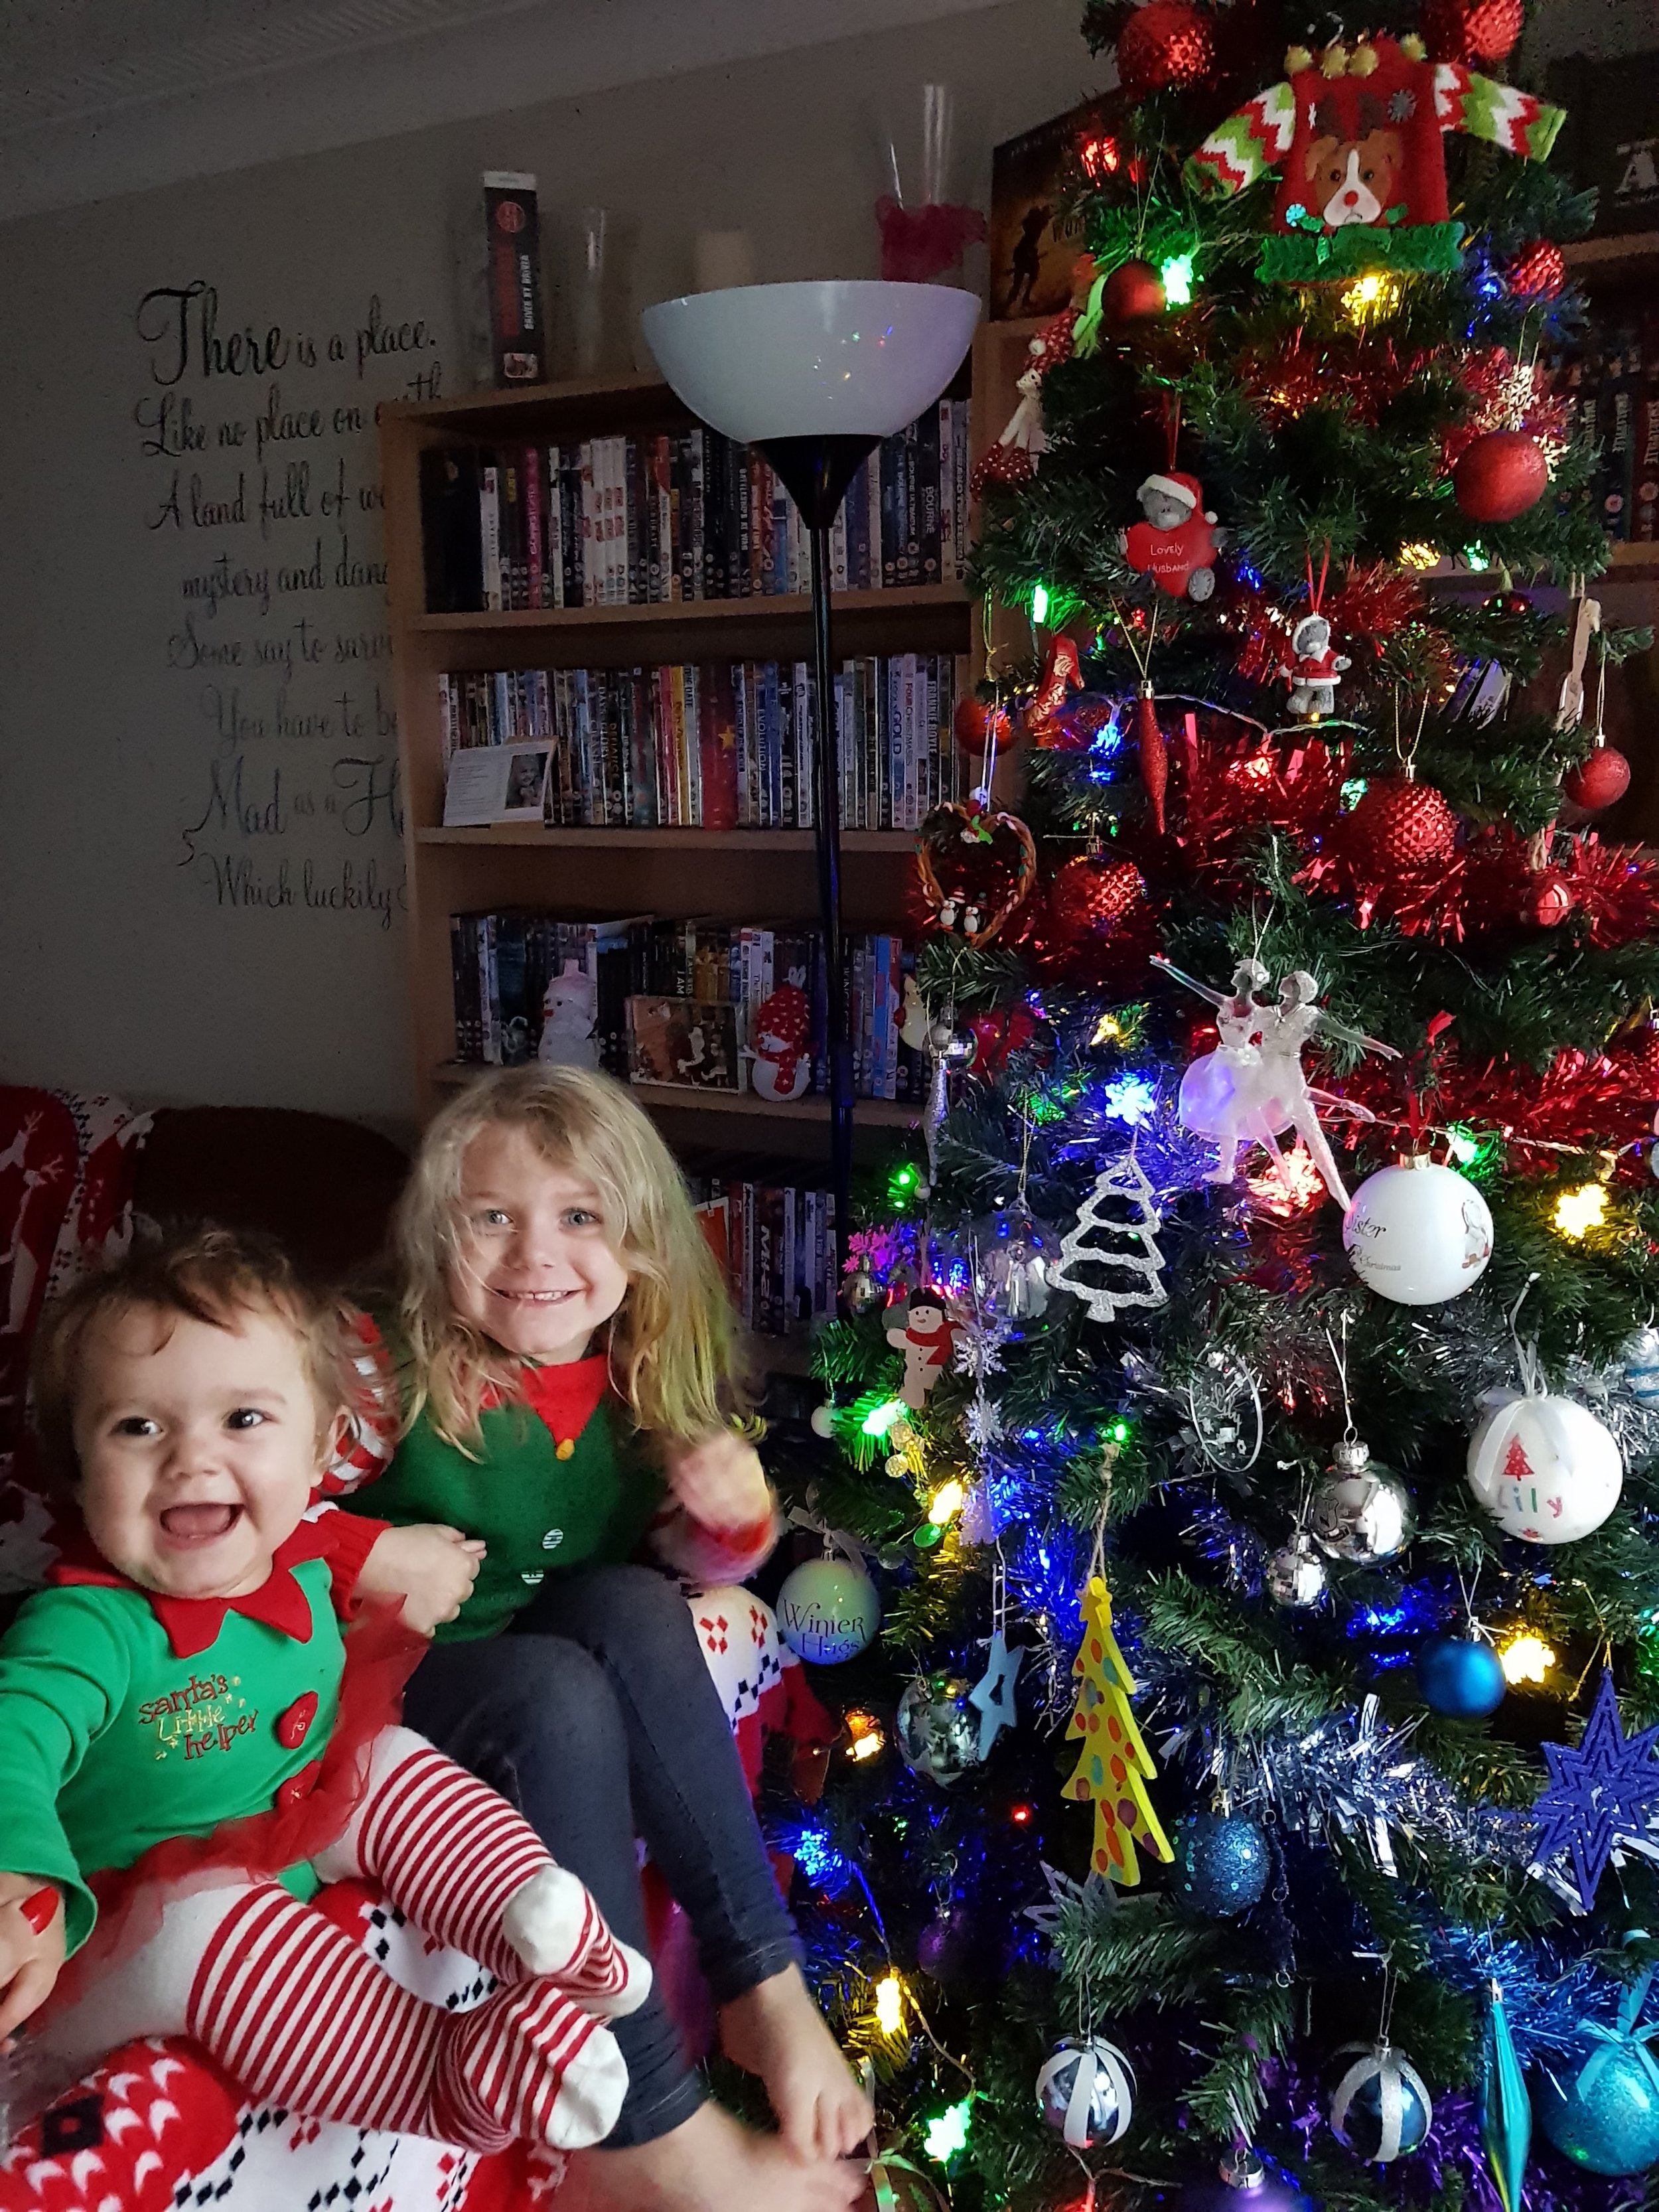 Our Christmas tree and my two girls